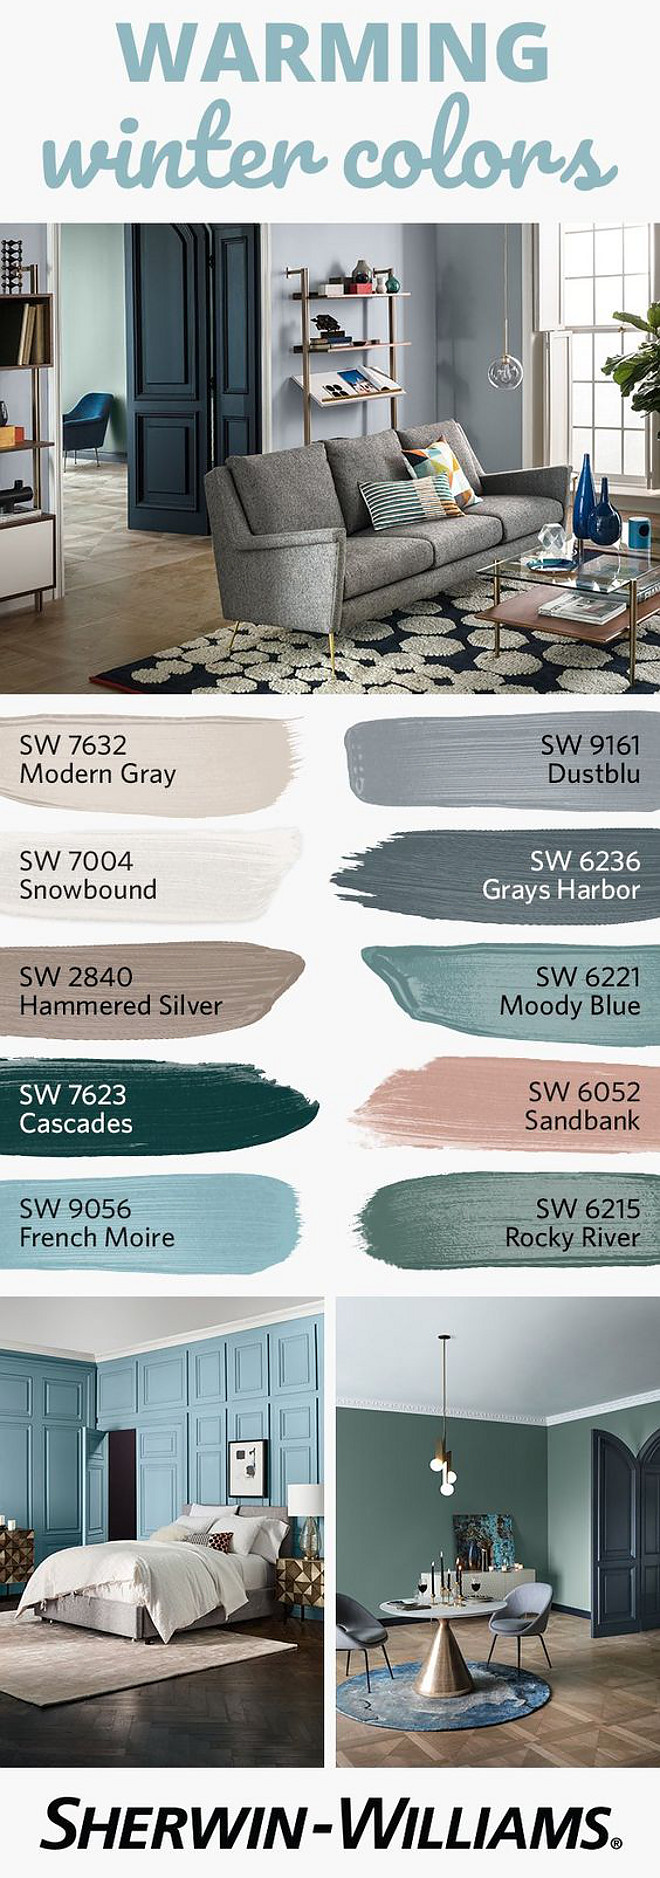 Warming Winter Paint Colors Warming Winter Paint Colors Sherwin Williams SW 7632 Modern Gray Sherwin Williams SW 9161 Dustblu Sherwin Williams SW 7004 Snowbound Sherwin Williams SW 6236 Grays Harbor Sherwin Williams SW 2840 Hammered Silver Sherwin Williams SW 6221 Moody Blue Sherwin Williams SW 7623 Cascades Sherwin Williams SW 6052 Sandbank Sherwin Williams SW 9056 French Moire Sherwin Williams SW 6215 Rocky River